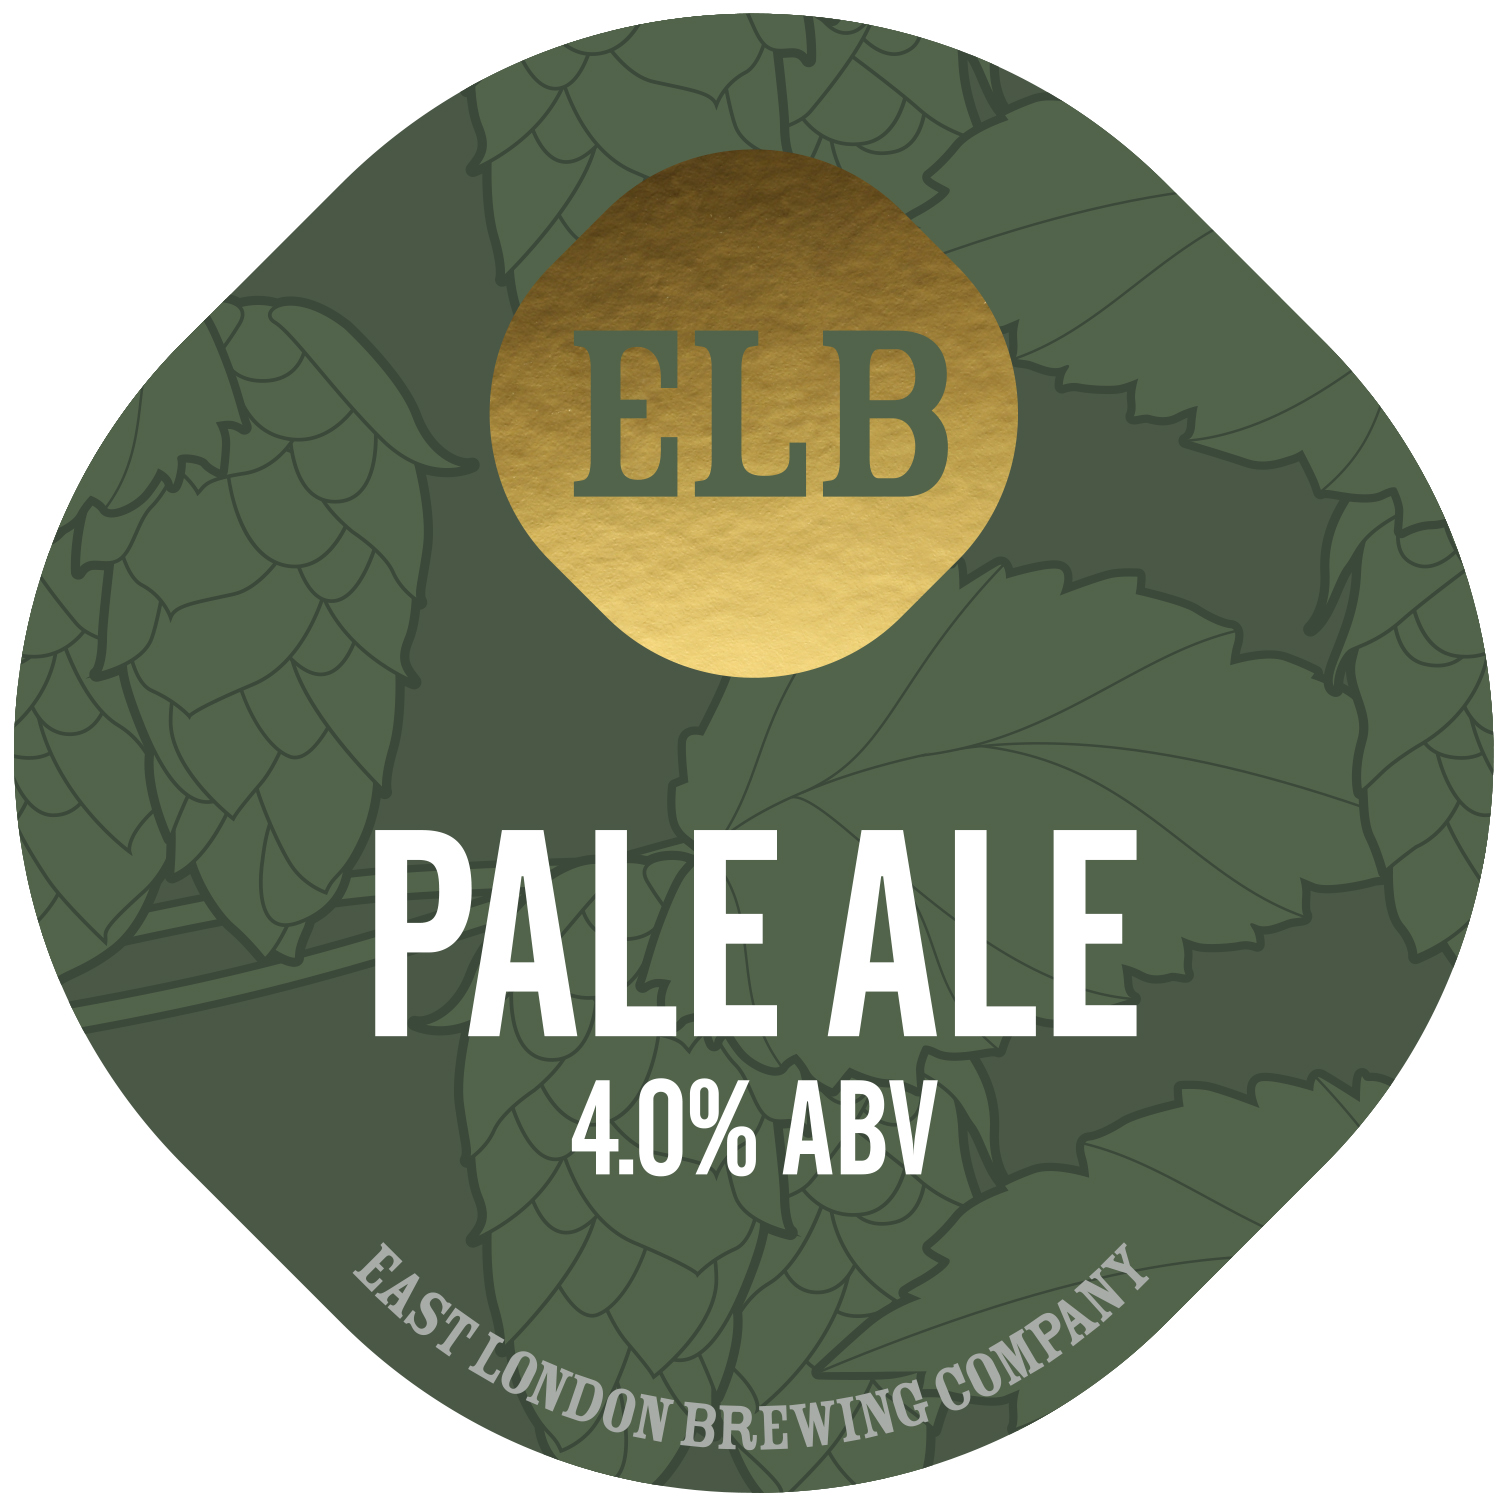 East London Brewing Pale Ale 9 Gallons Pale Gold 4.0%